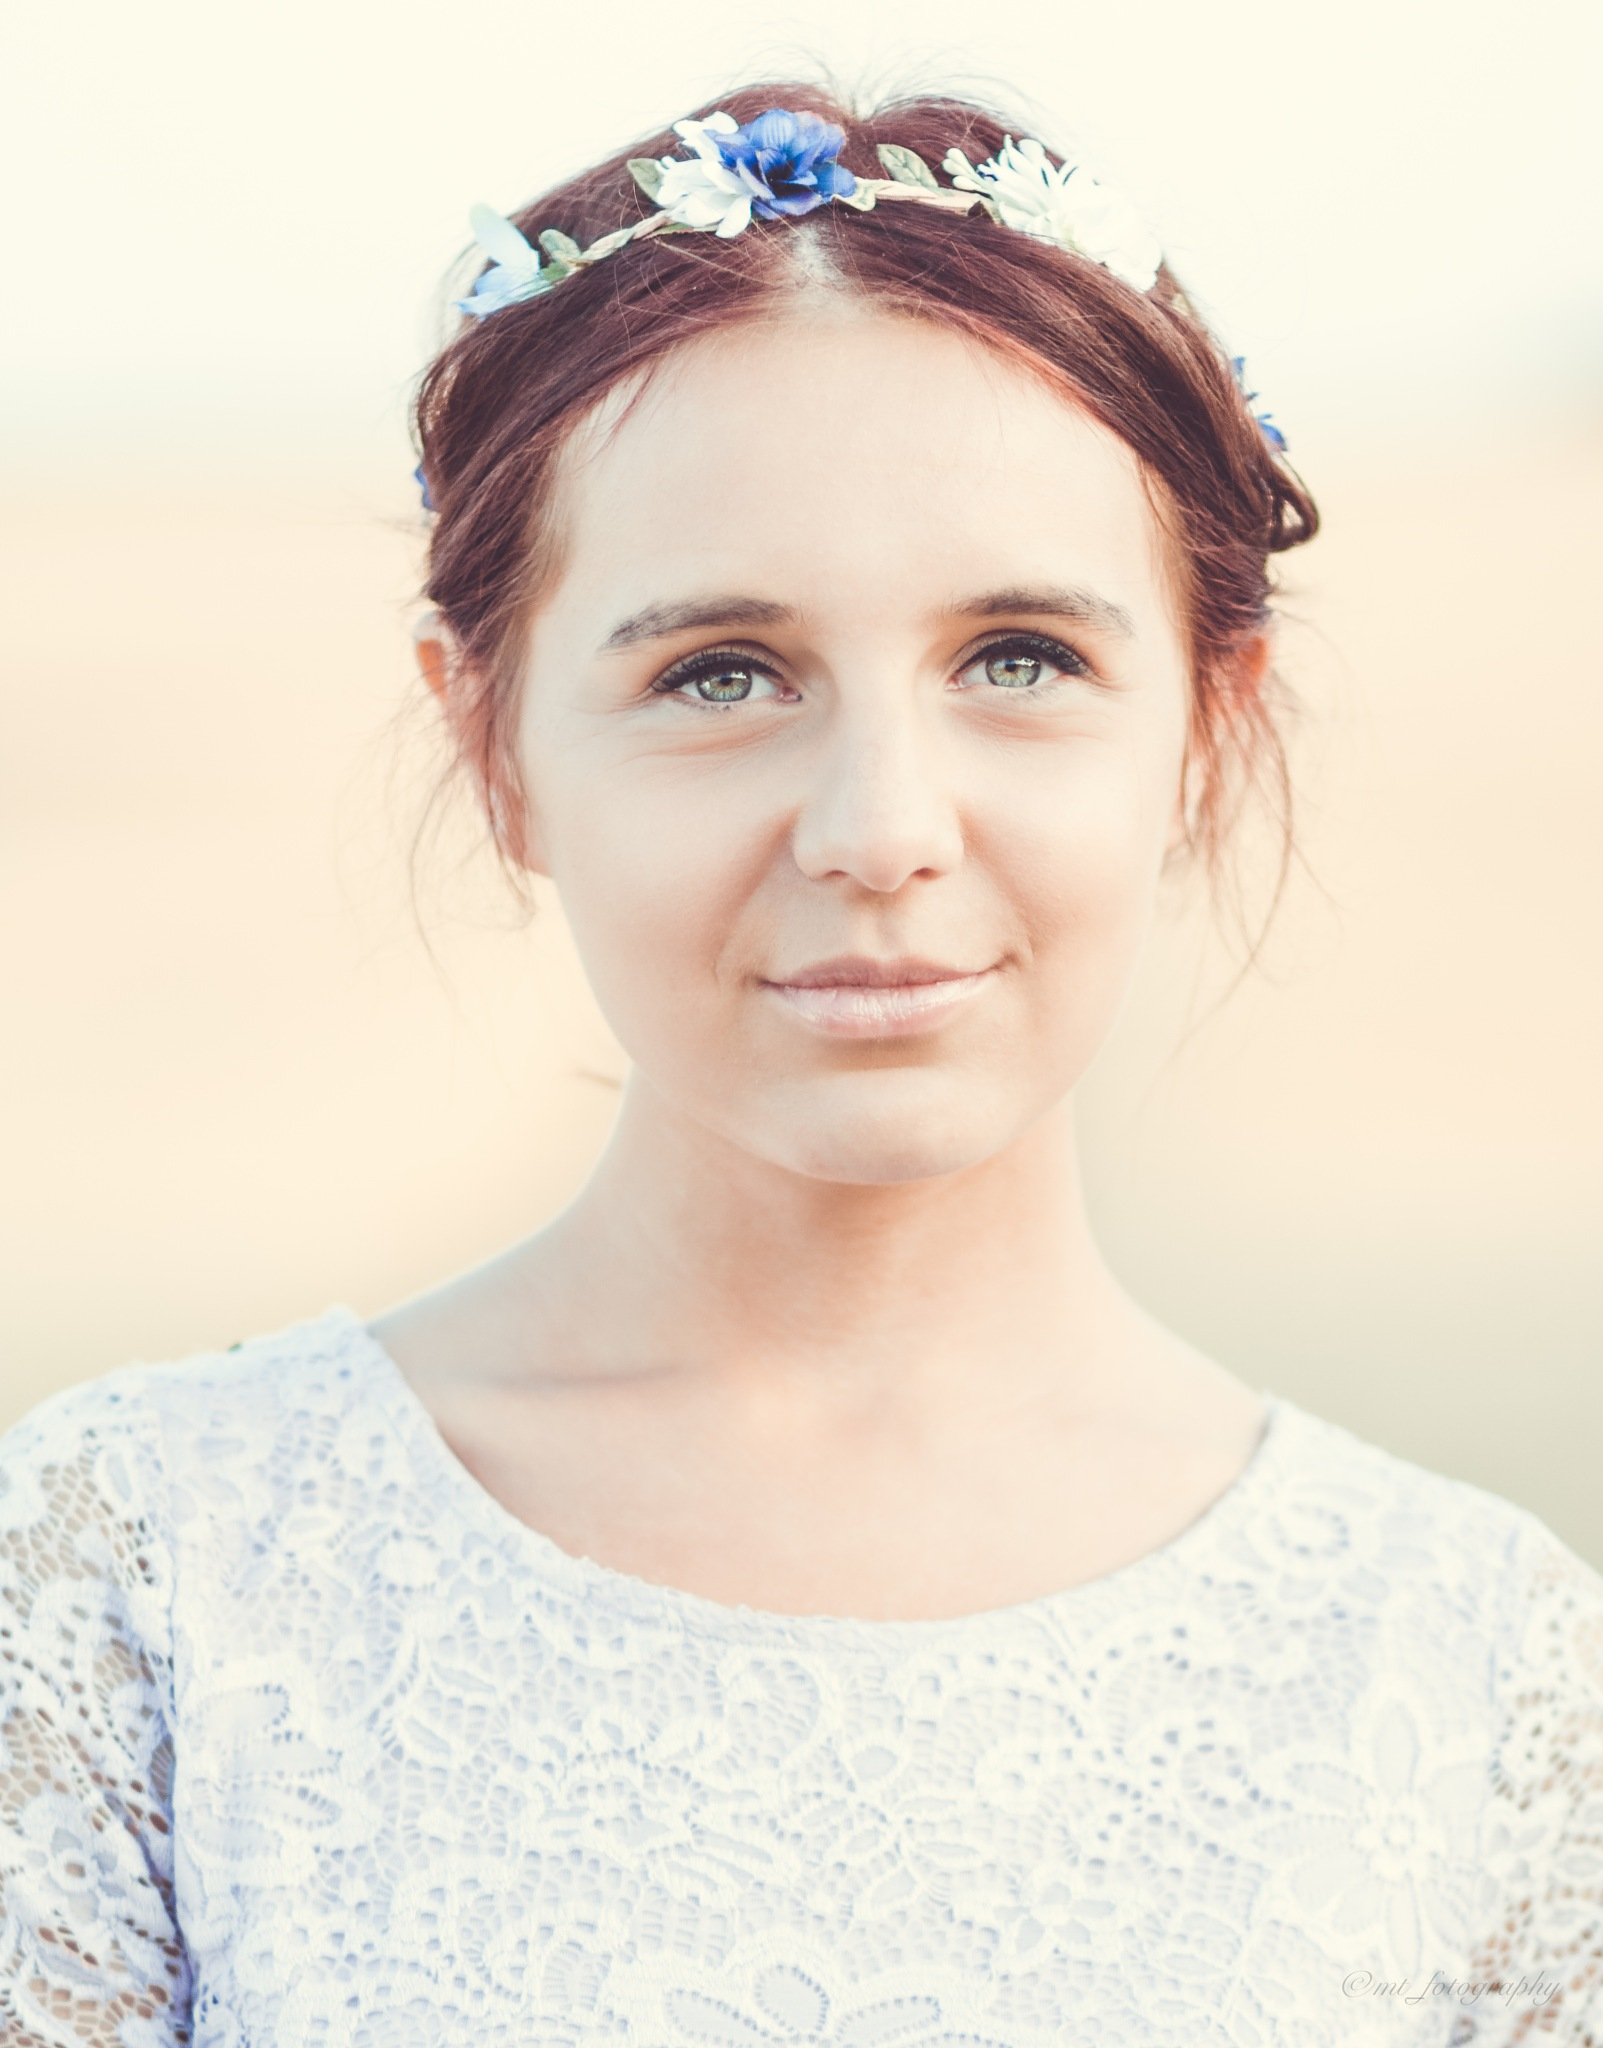 flower girl portrait  by Morten Thomsen